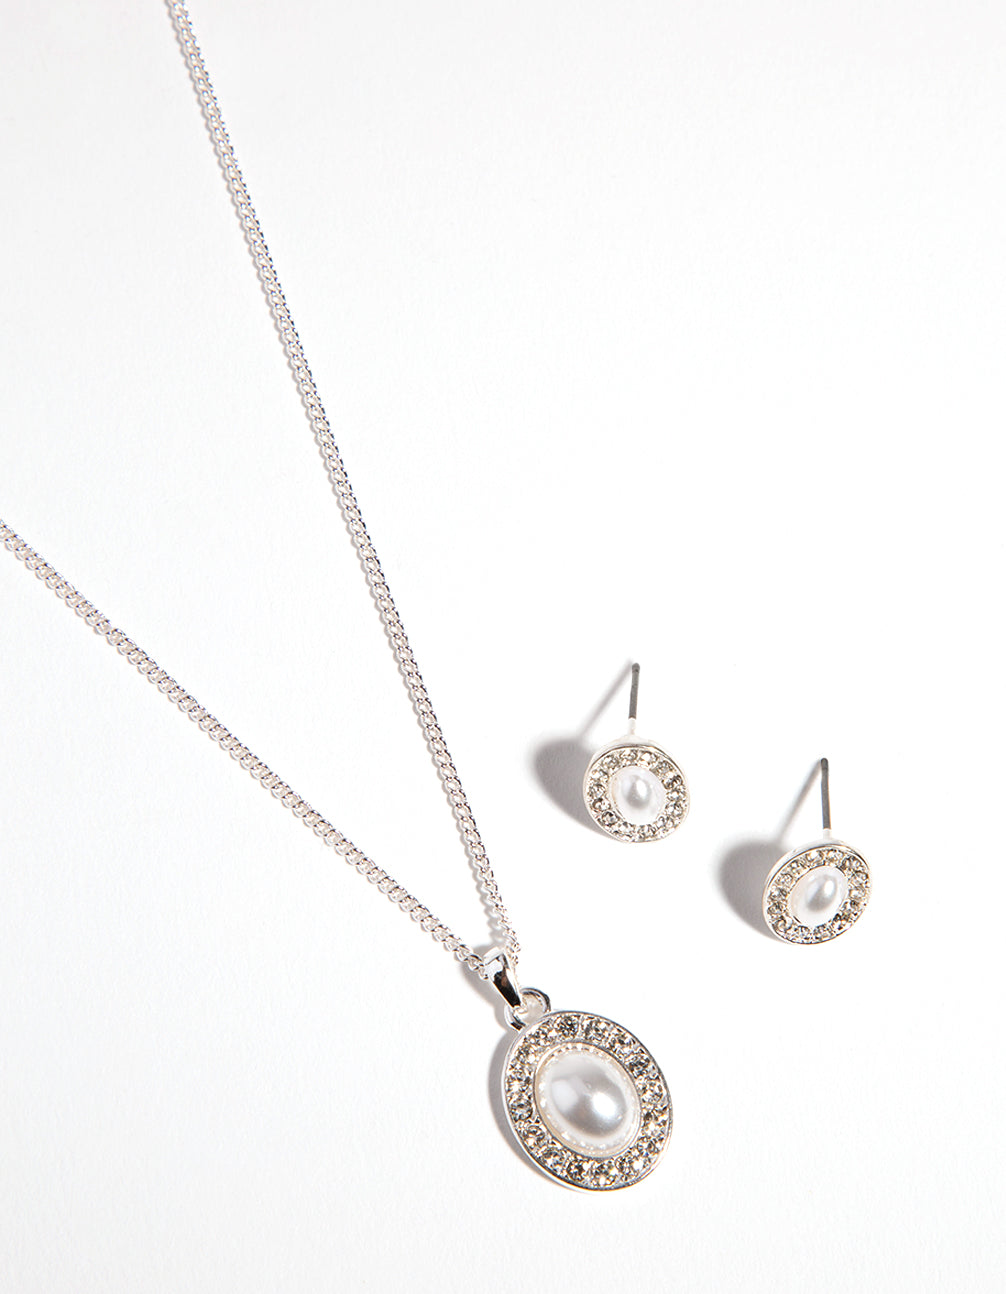 Silver Oval Pearl Diamante Necklace and Earrings Set